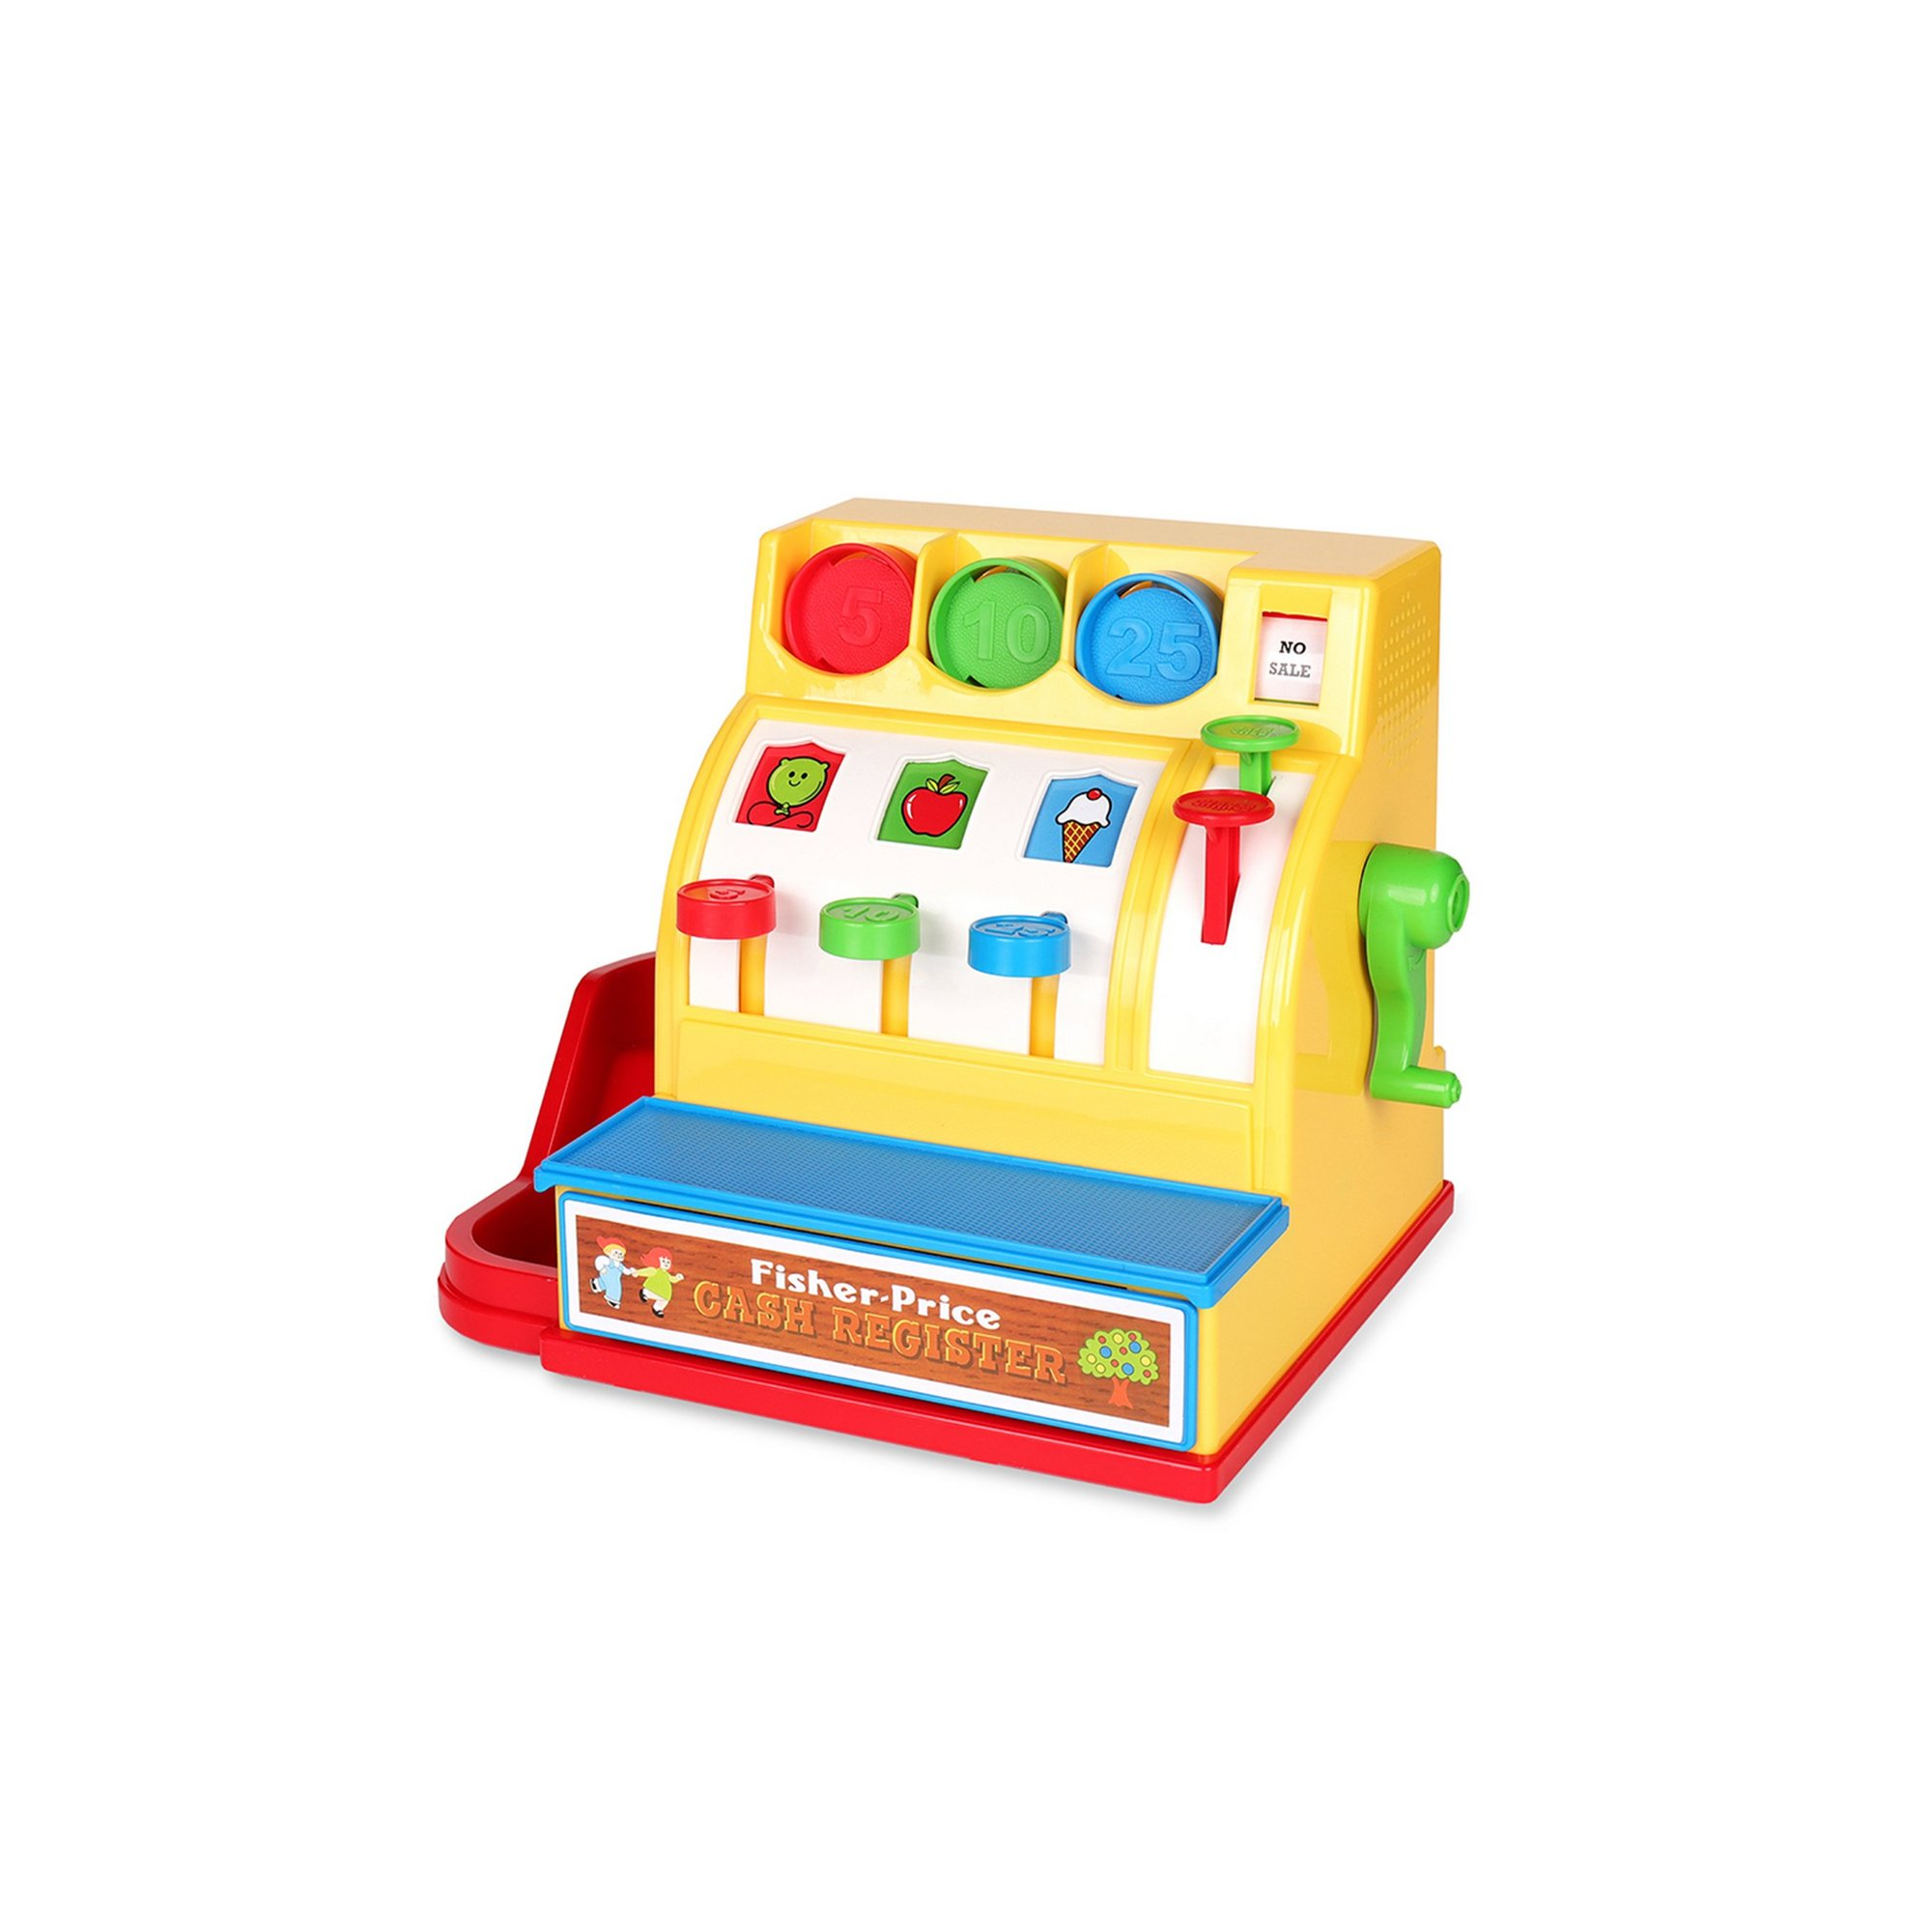 Image of Fisher Price Classic Cash Register